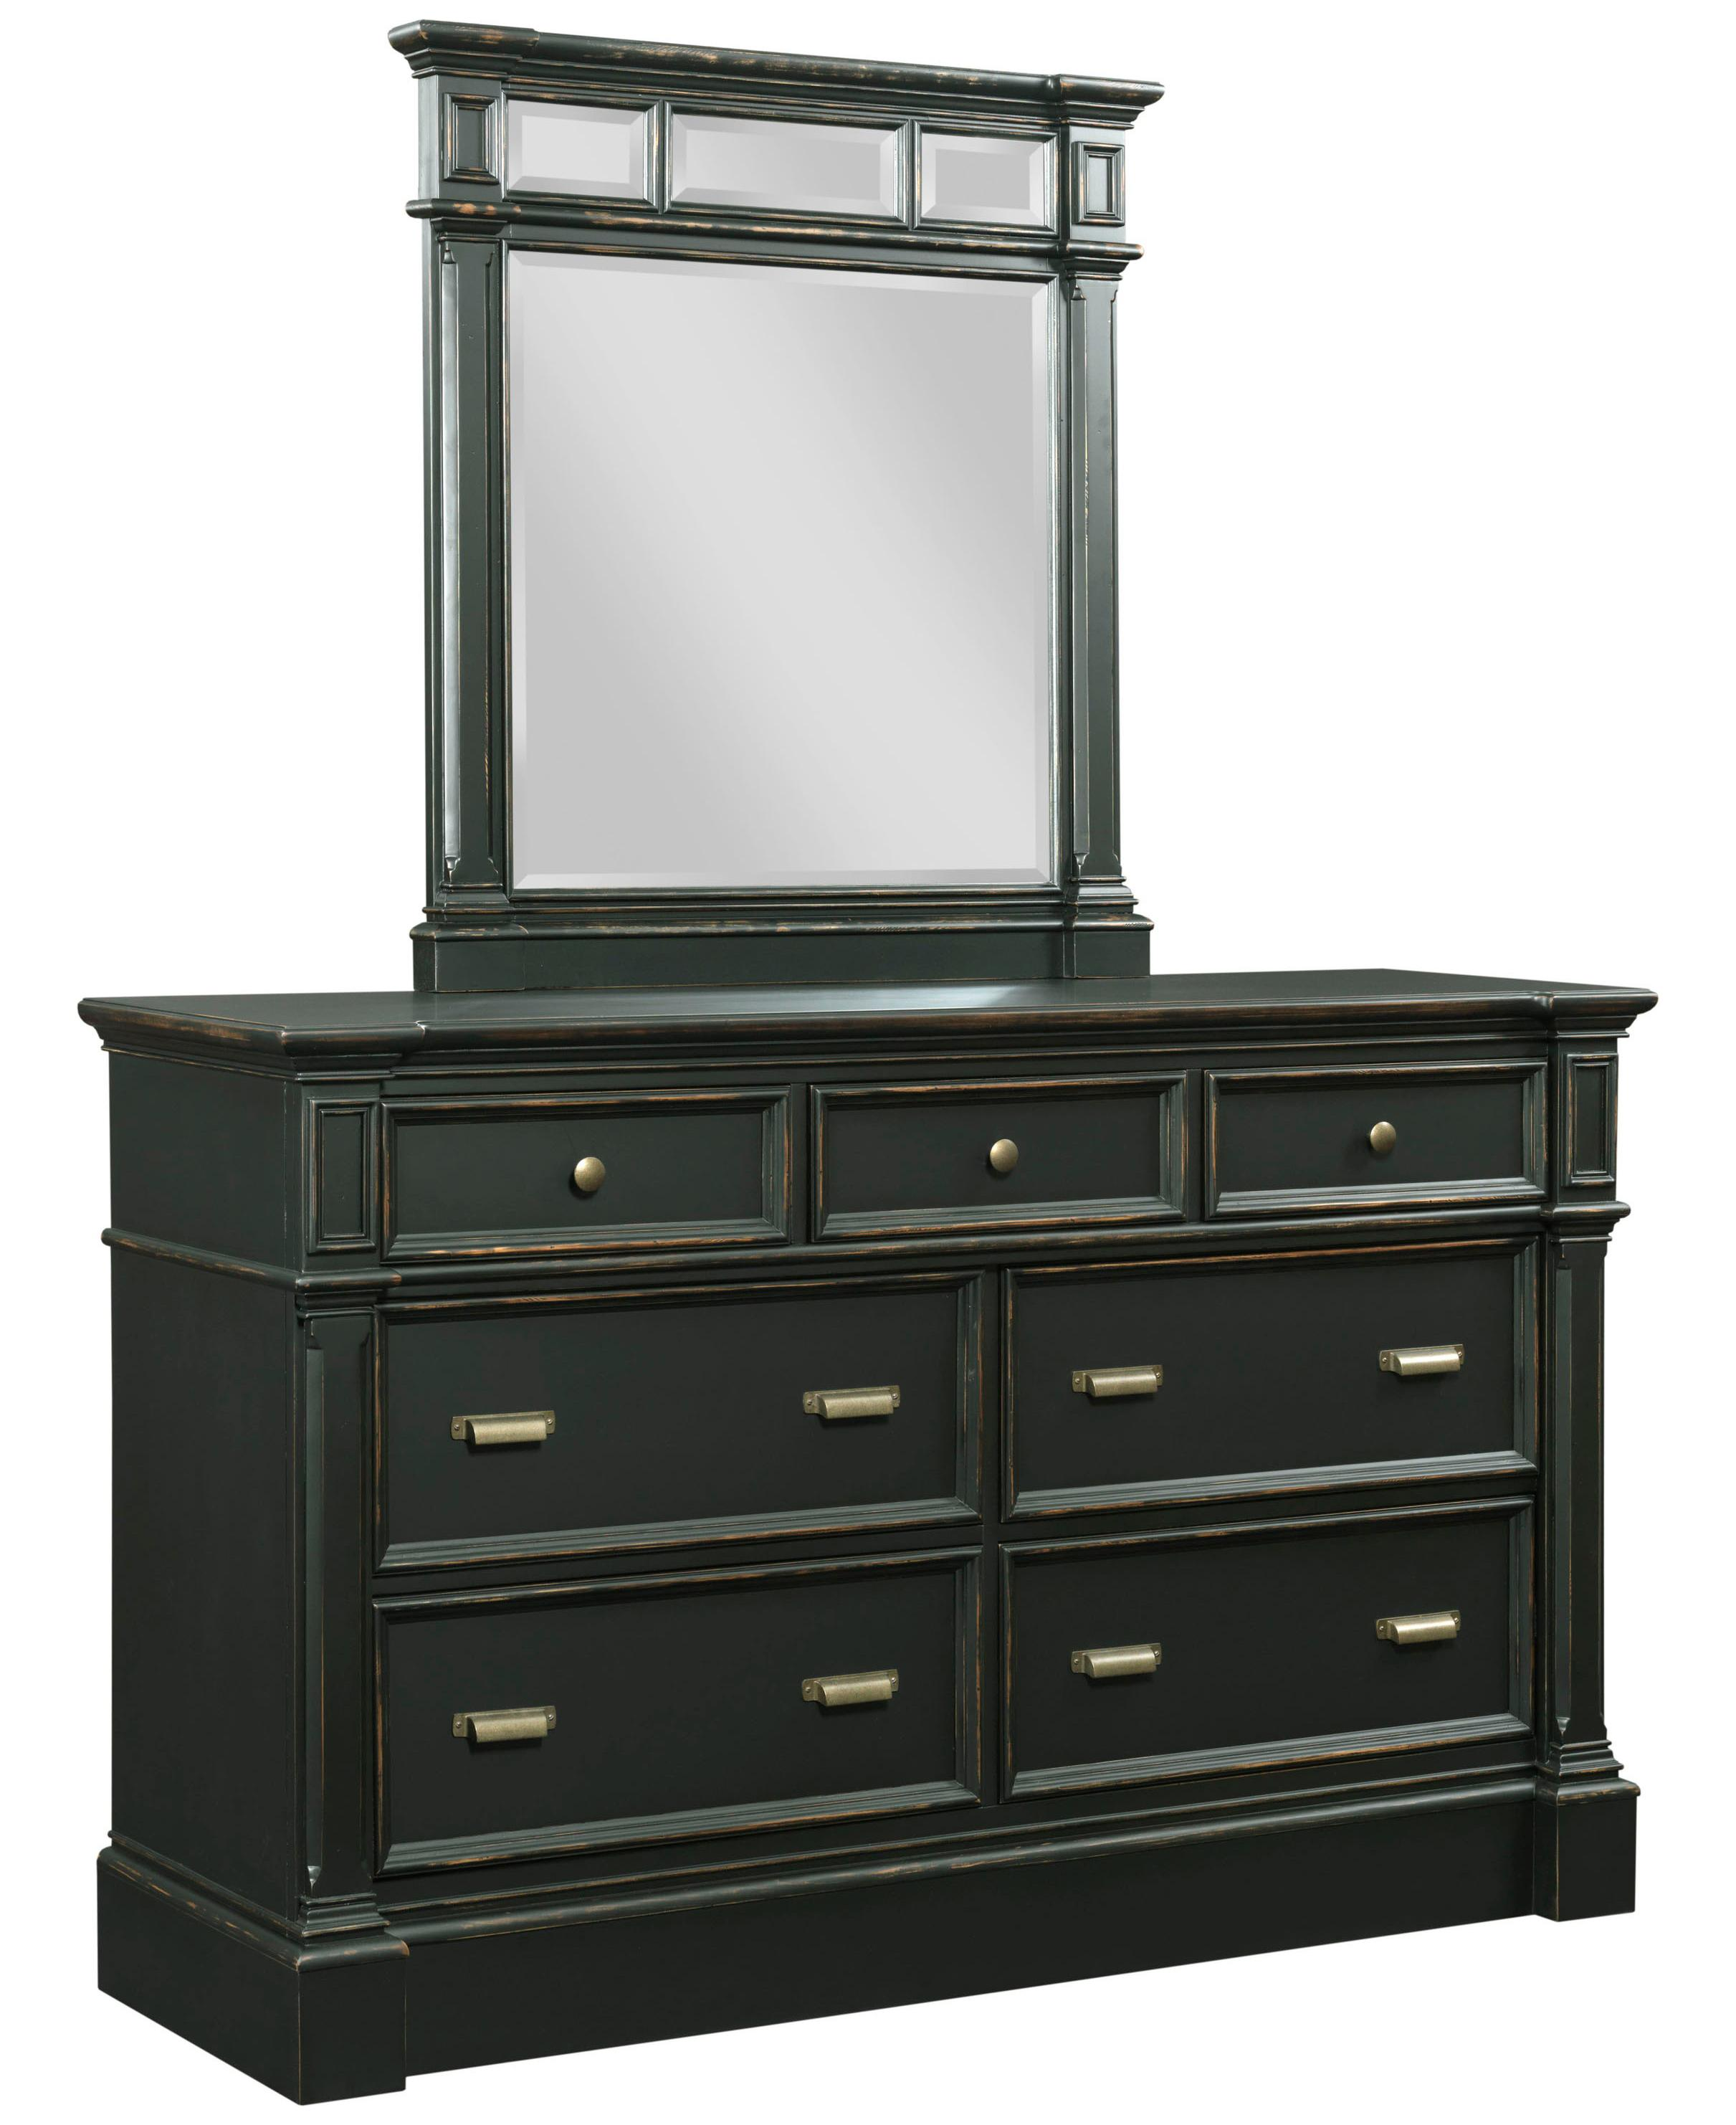 Broyhill Furniture New Vintage Dresser and Mirror Set - Item Number: 4809-230+7